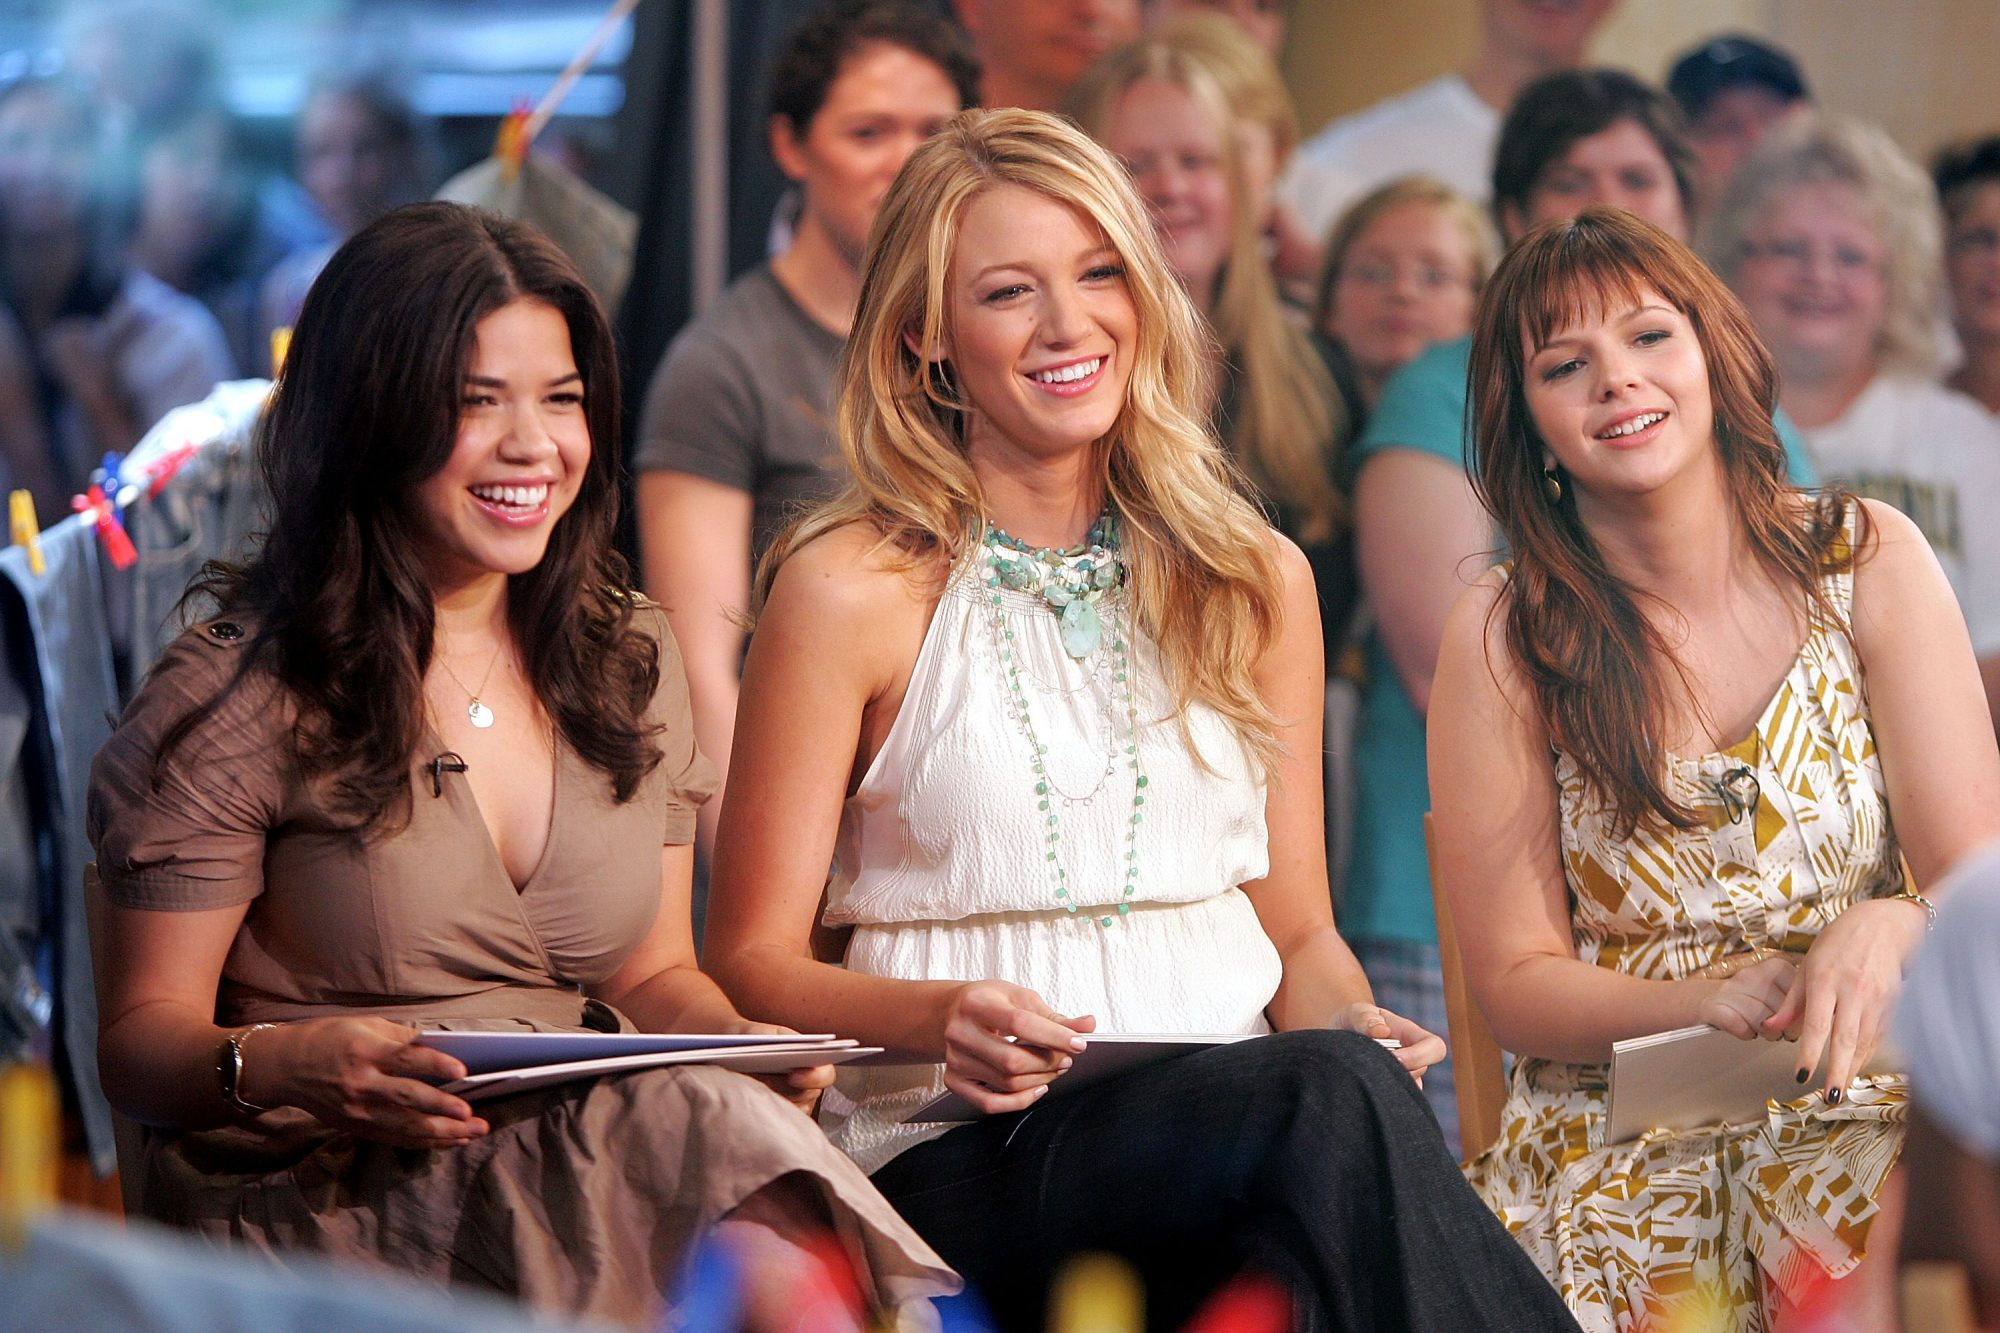 """Blake Lively, America Ferrera, Amber Tamblyn and Alexis Bledel Visit ABC's """"Good Morning America"""" - August 4, 2008"""